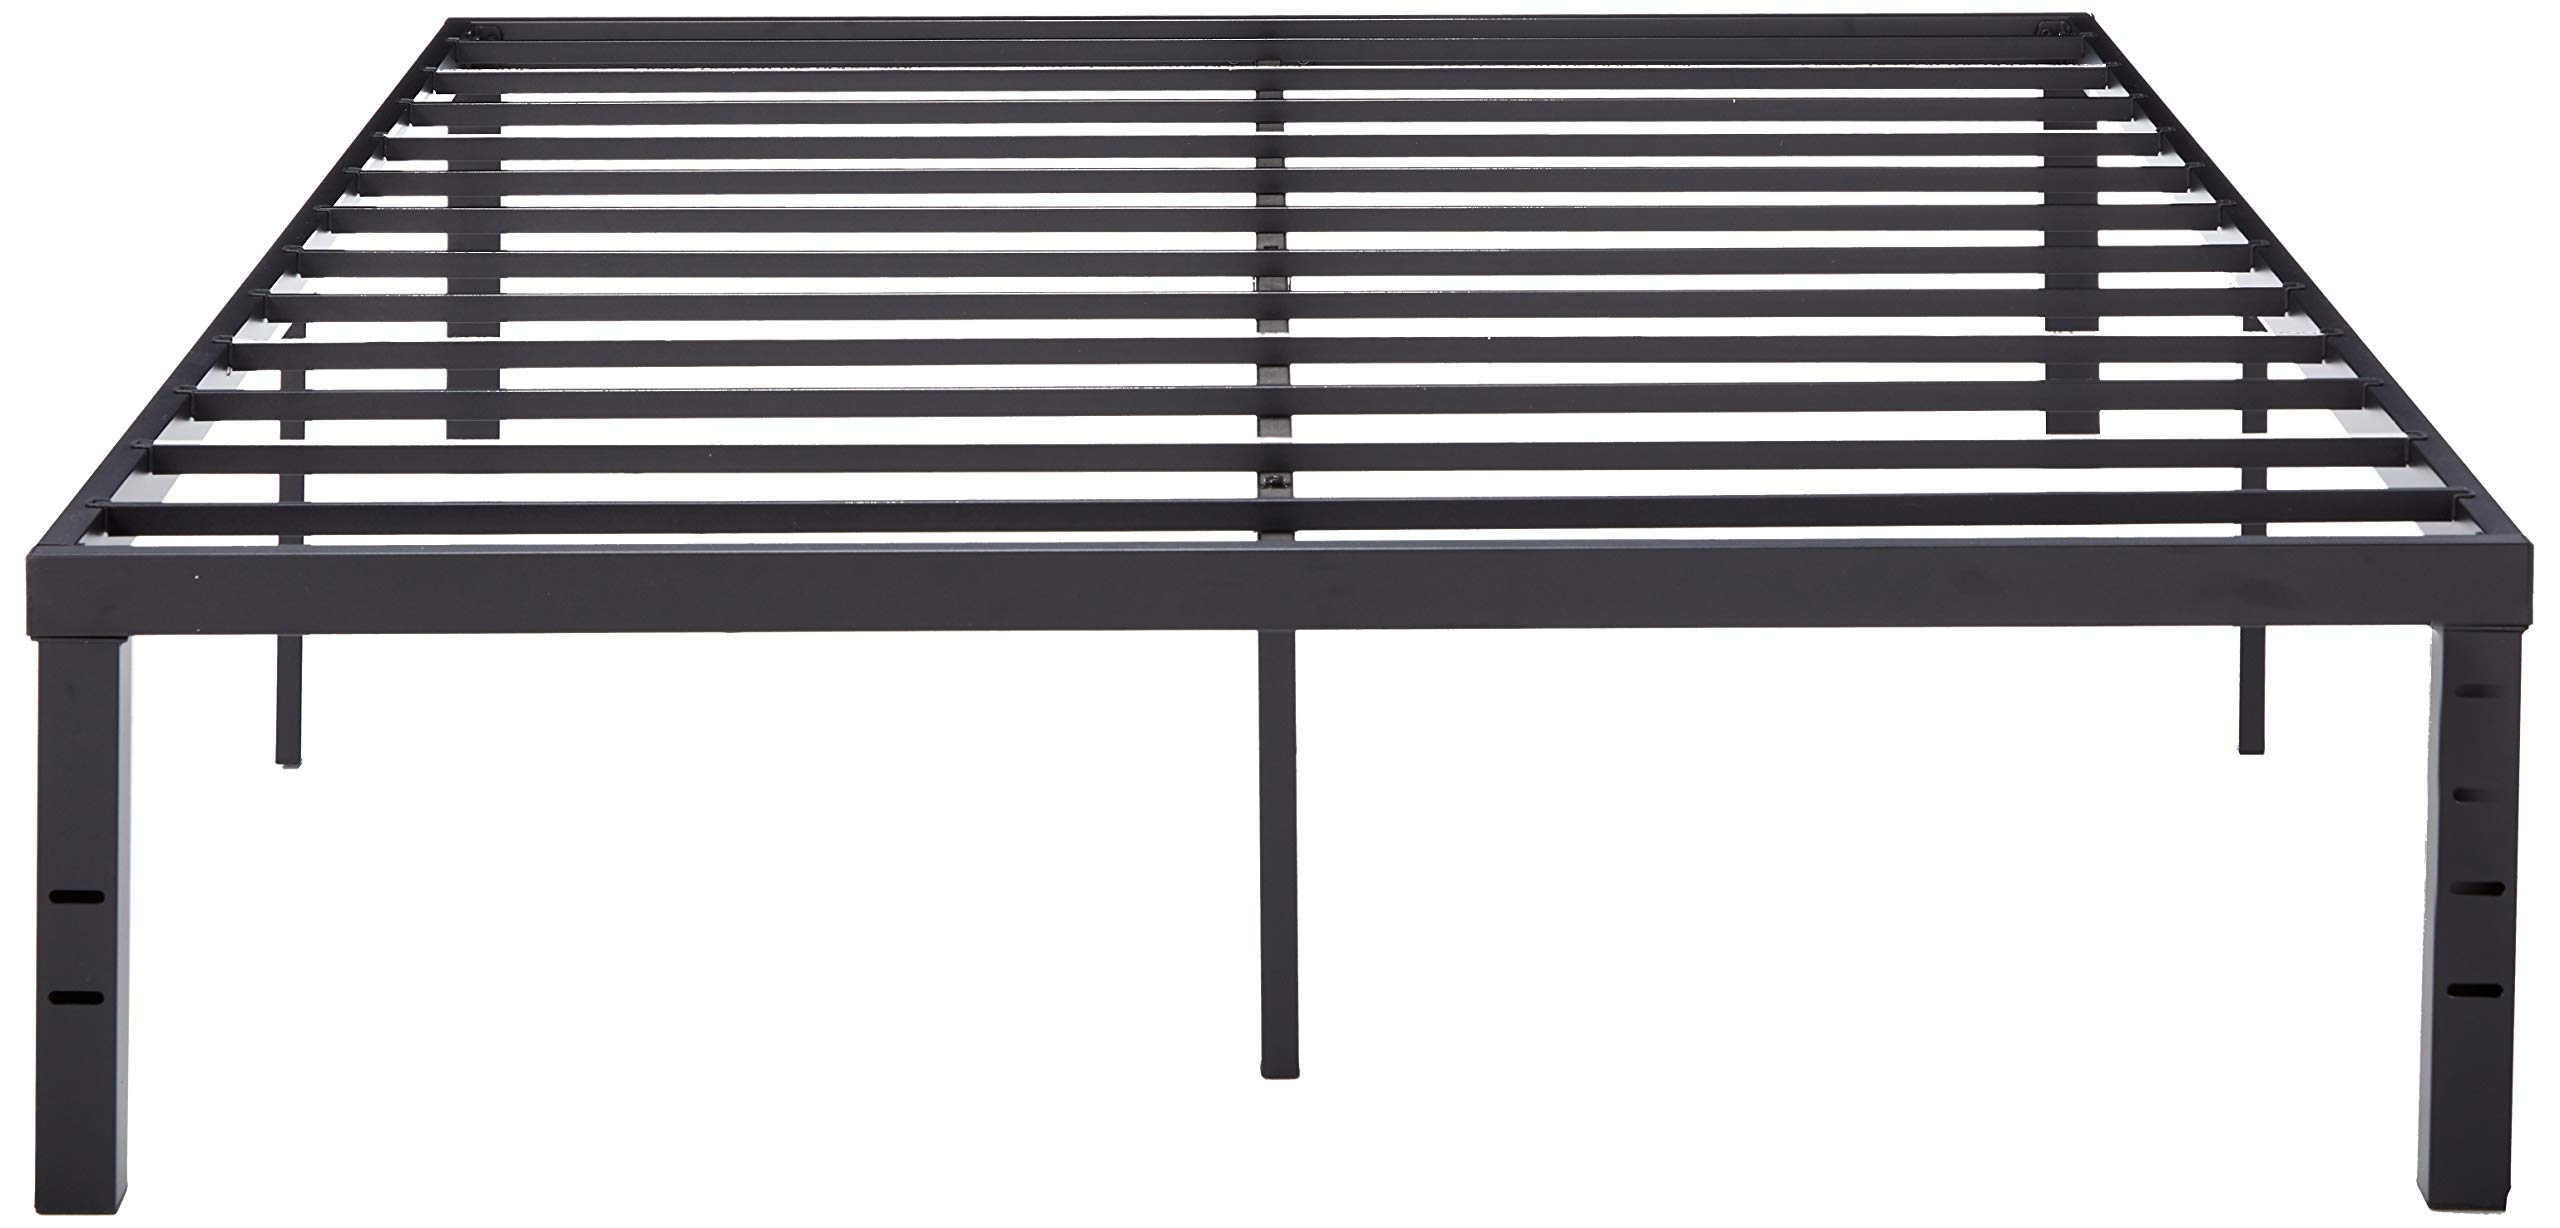 Zinus Luis Quick Lock 14 Inch Metal Platform Bed Frame / Mattress Foundation / No Box Spring Needed, Twin